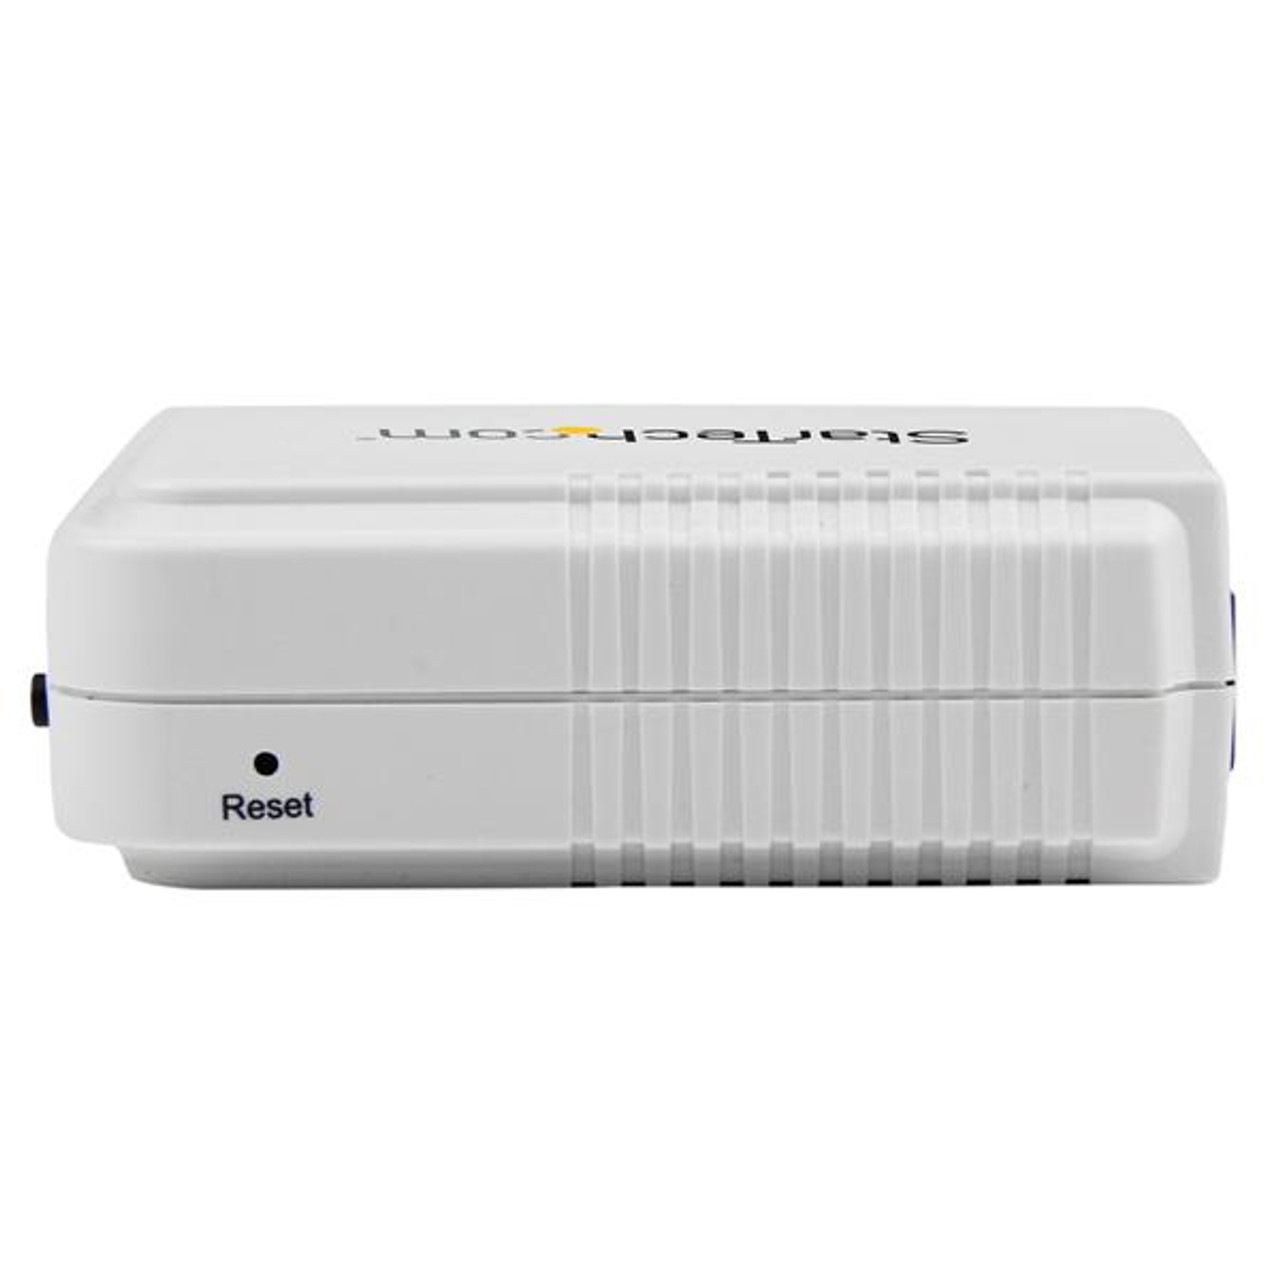 StarTech External wireless print server